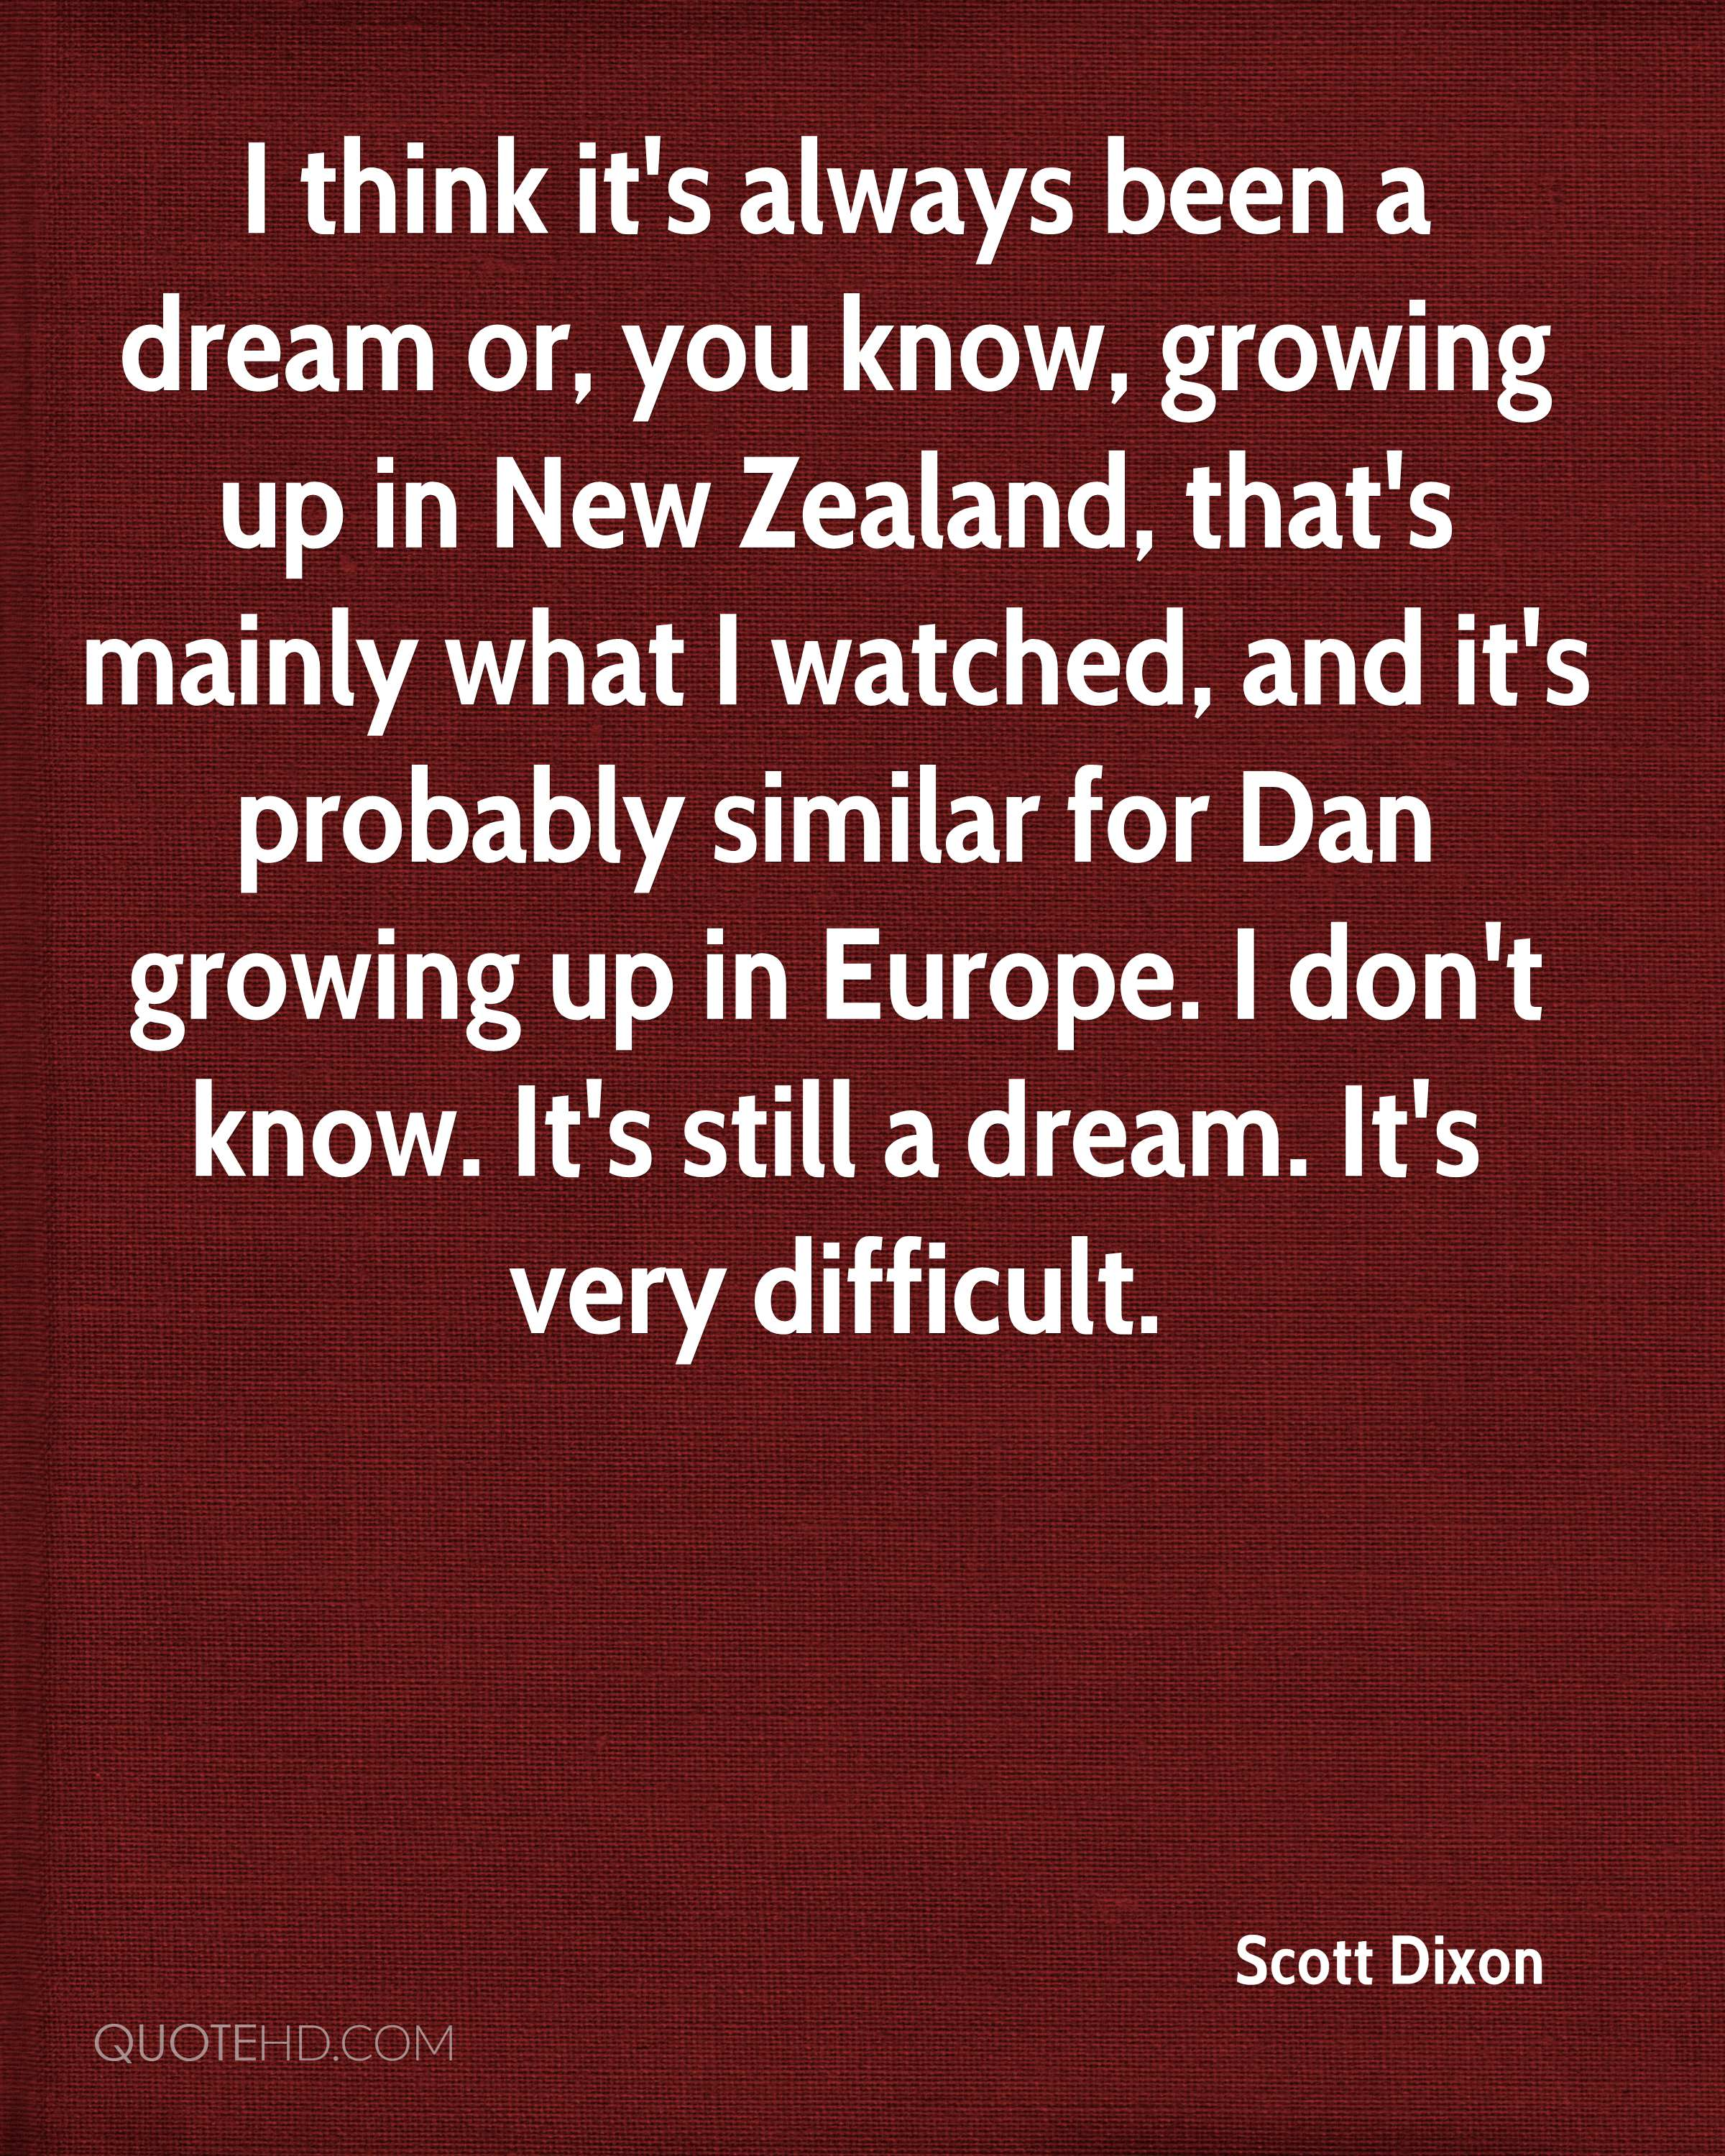 I think it's always been a dream or, you know, growing up in New Zealand, that's mainly what I watched, and it's probably similar for Dan growing up in Europe. I don't know. It's still a dream. It's very difficult.